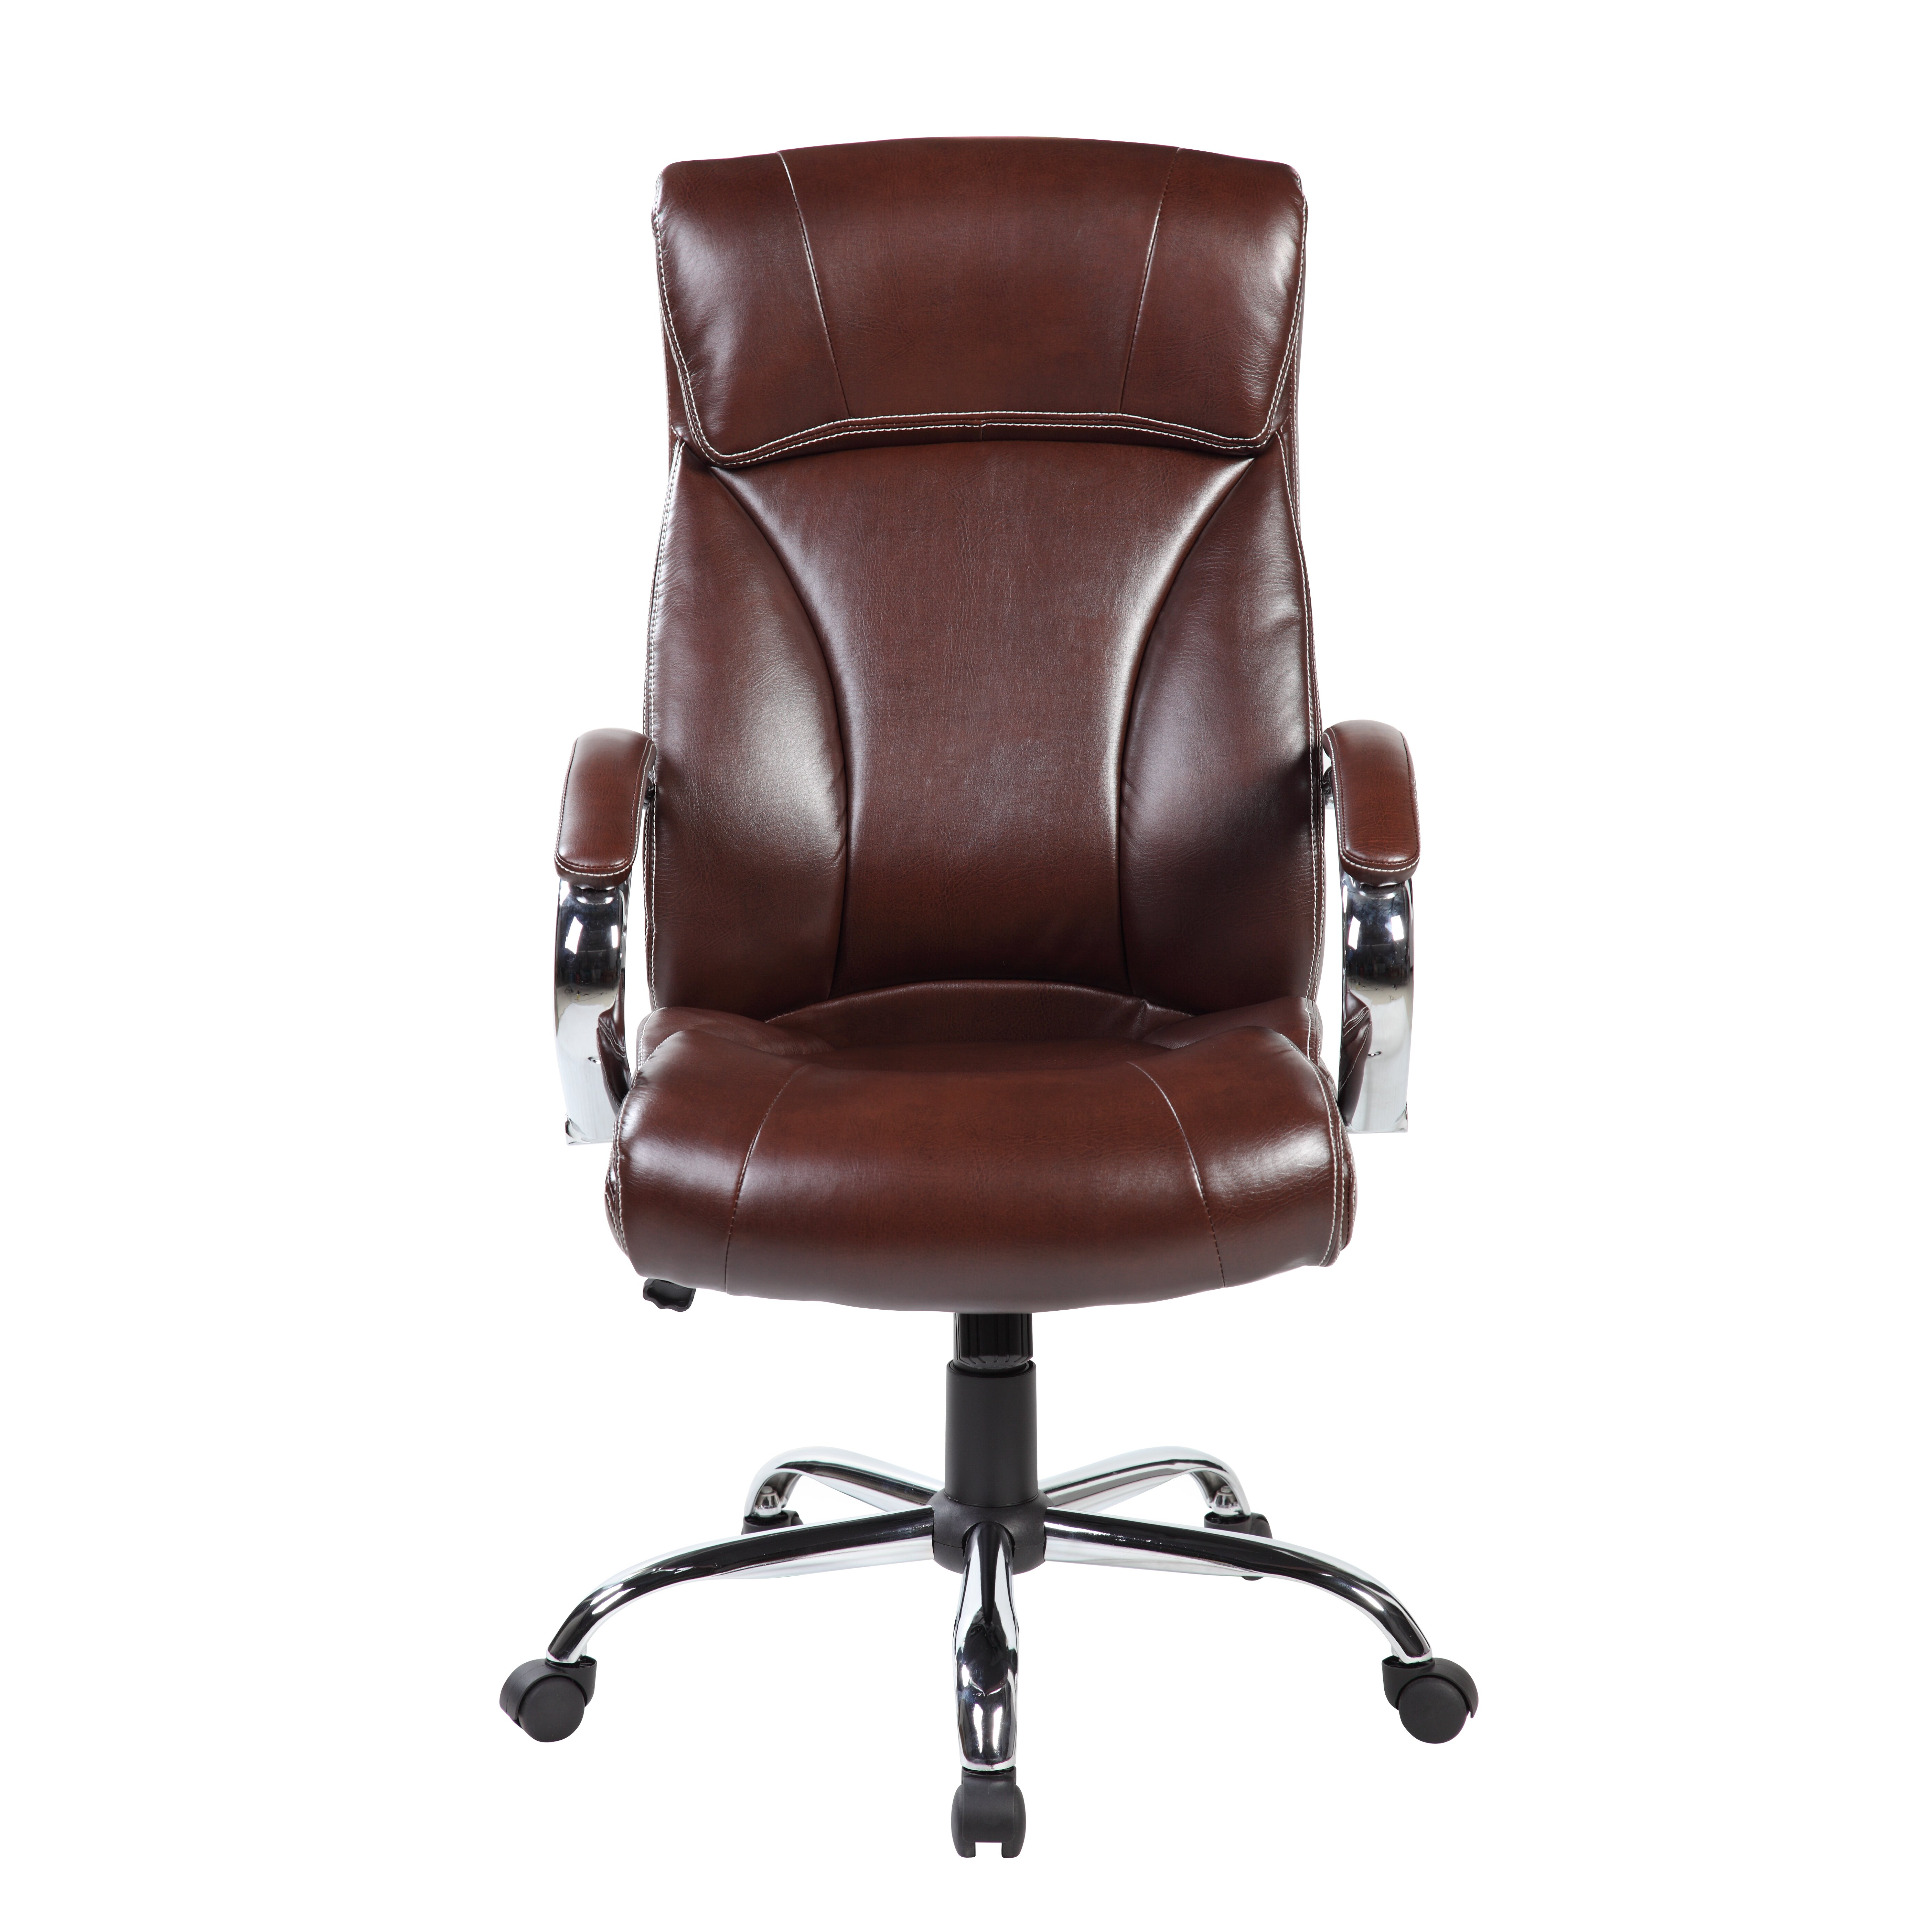 United chair industries llc high back executive chair for Abanos furniture industries decoration llc